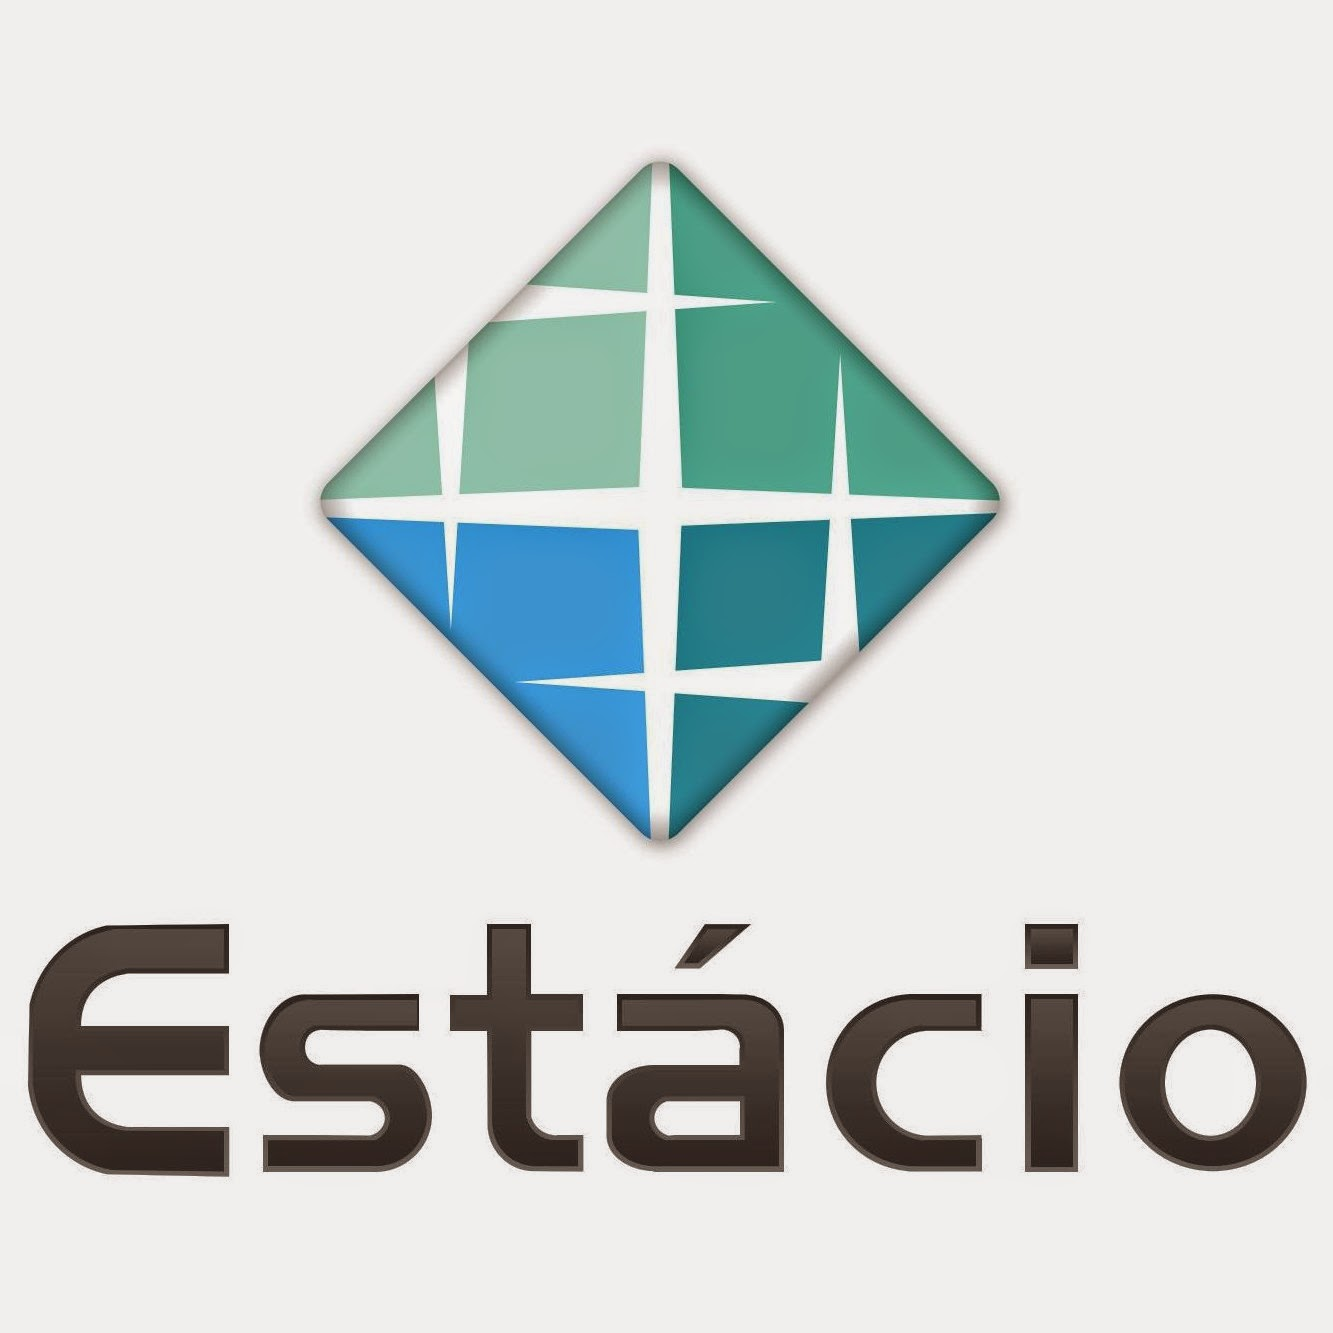 estacio-logo-faculdade-9